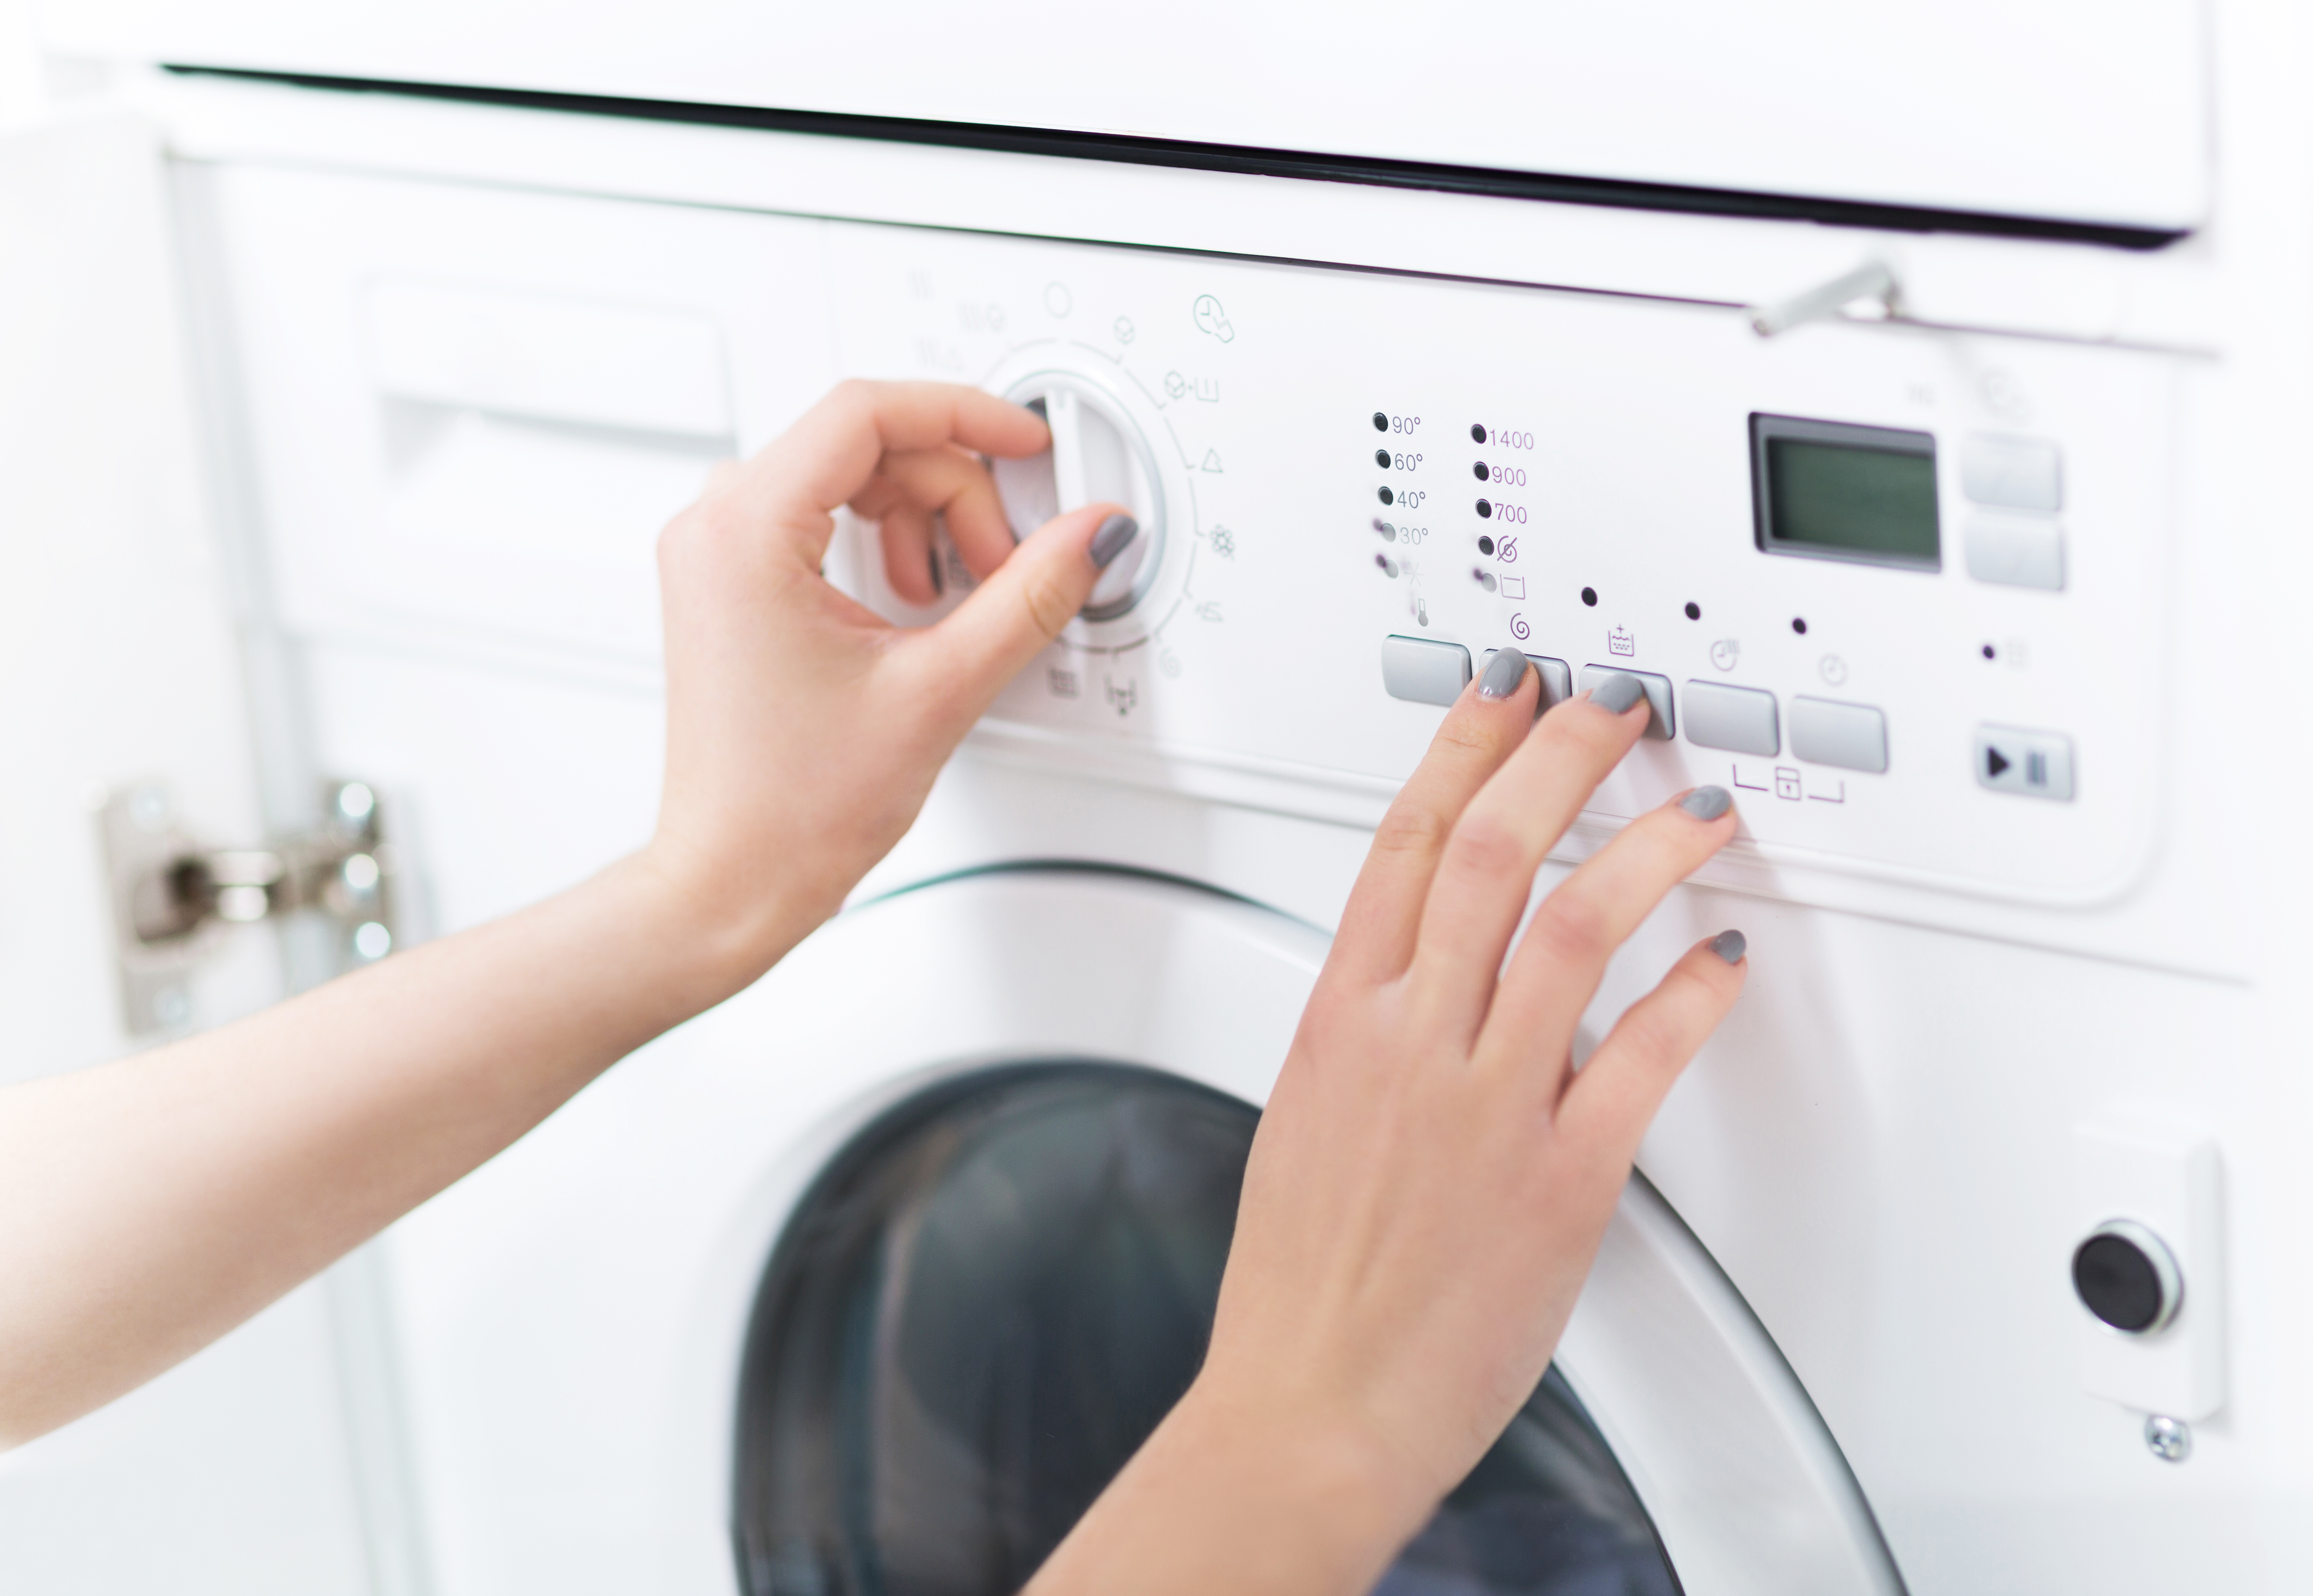 Your Maytag Clothes Washer Does Not Fill Up With Water